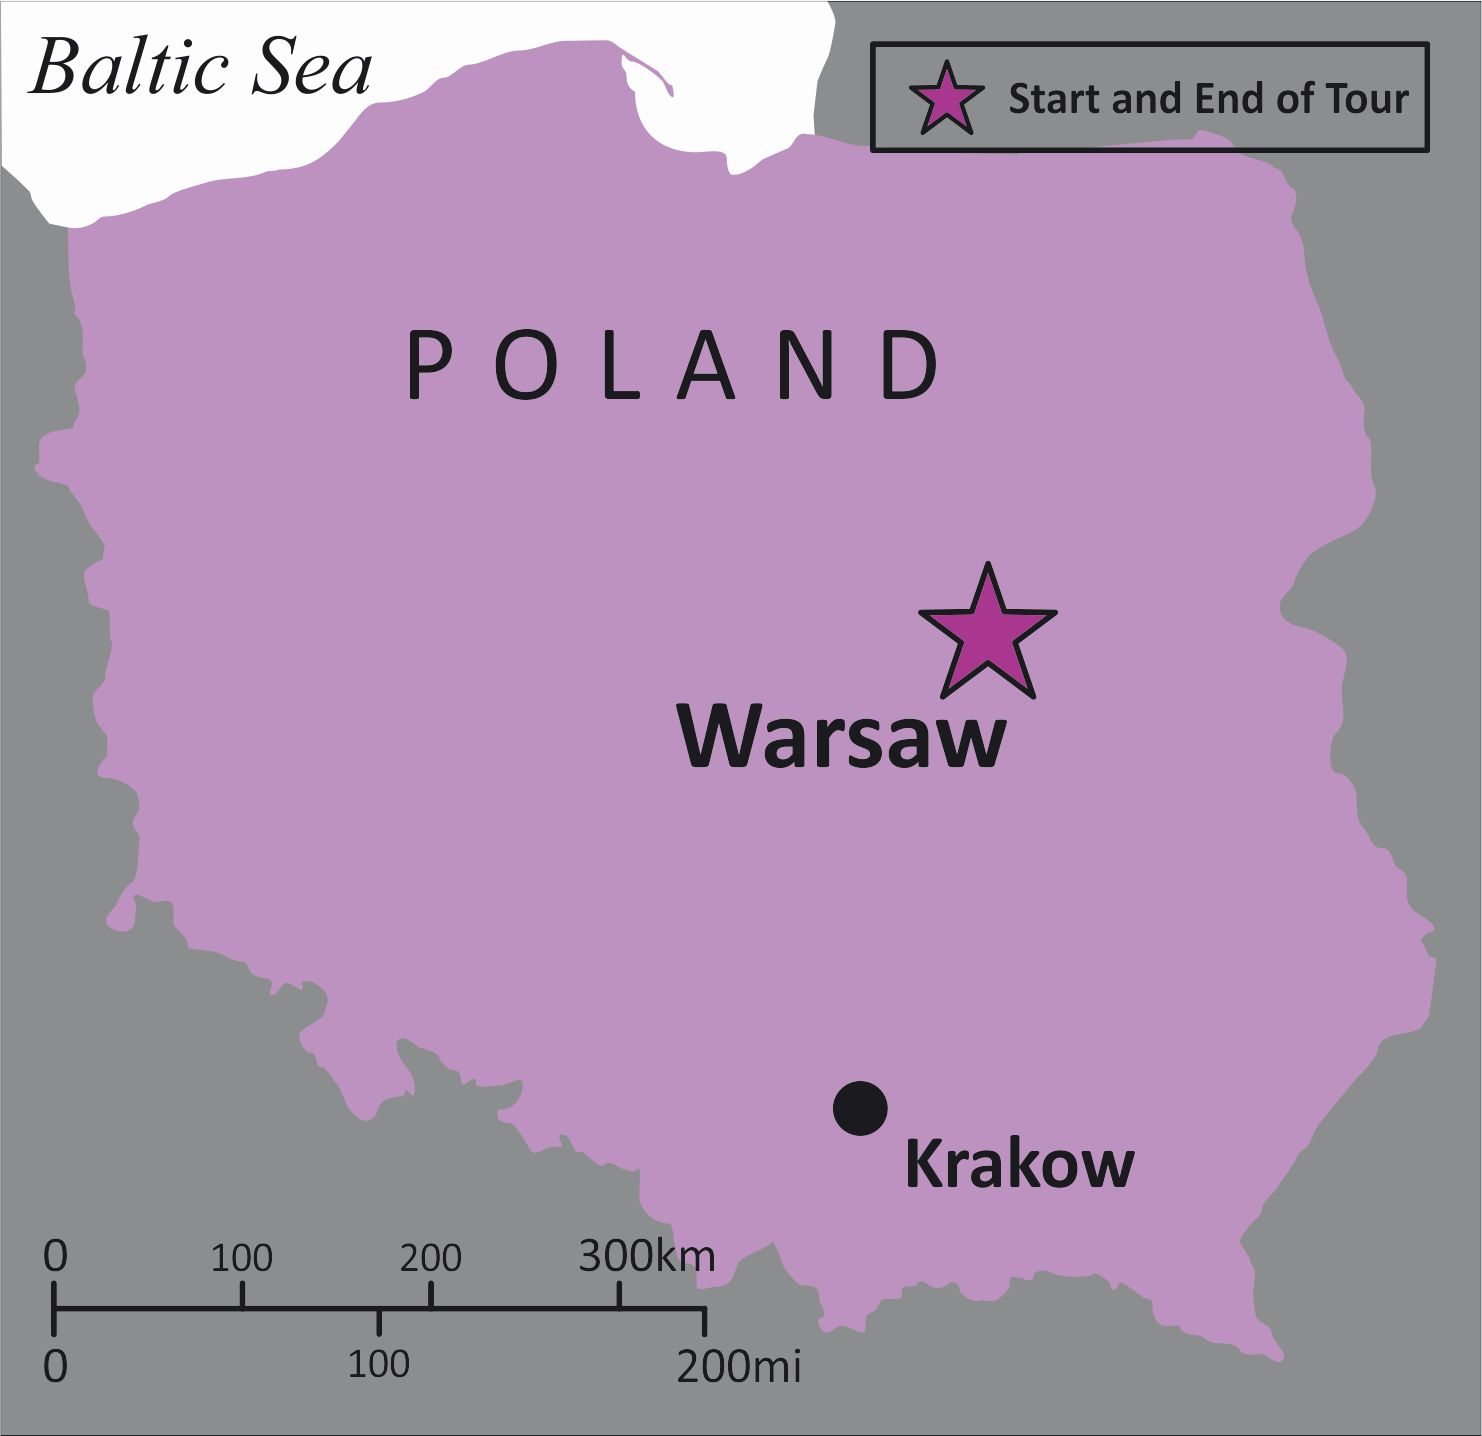 Sights and Soul Travels - Poland: Old and New Warsaw ... on map of poland circa 1900, map of germany and poland, map of 1900 poland genealoy, map of concentration camps, map of ukraine and poland, detailed map of poland, map of poland with cities, map of podkarpackie poland, map prussia berlin, map of poland 1900 1920, map of warmia poland, map of jewish ghettos in poland, easy map of poland, map of ghetto in budapest, map of poland in polish, political map of poland, map of silesia poland, map of jewish ghetto wwii,